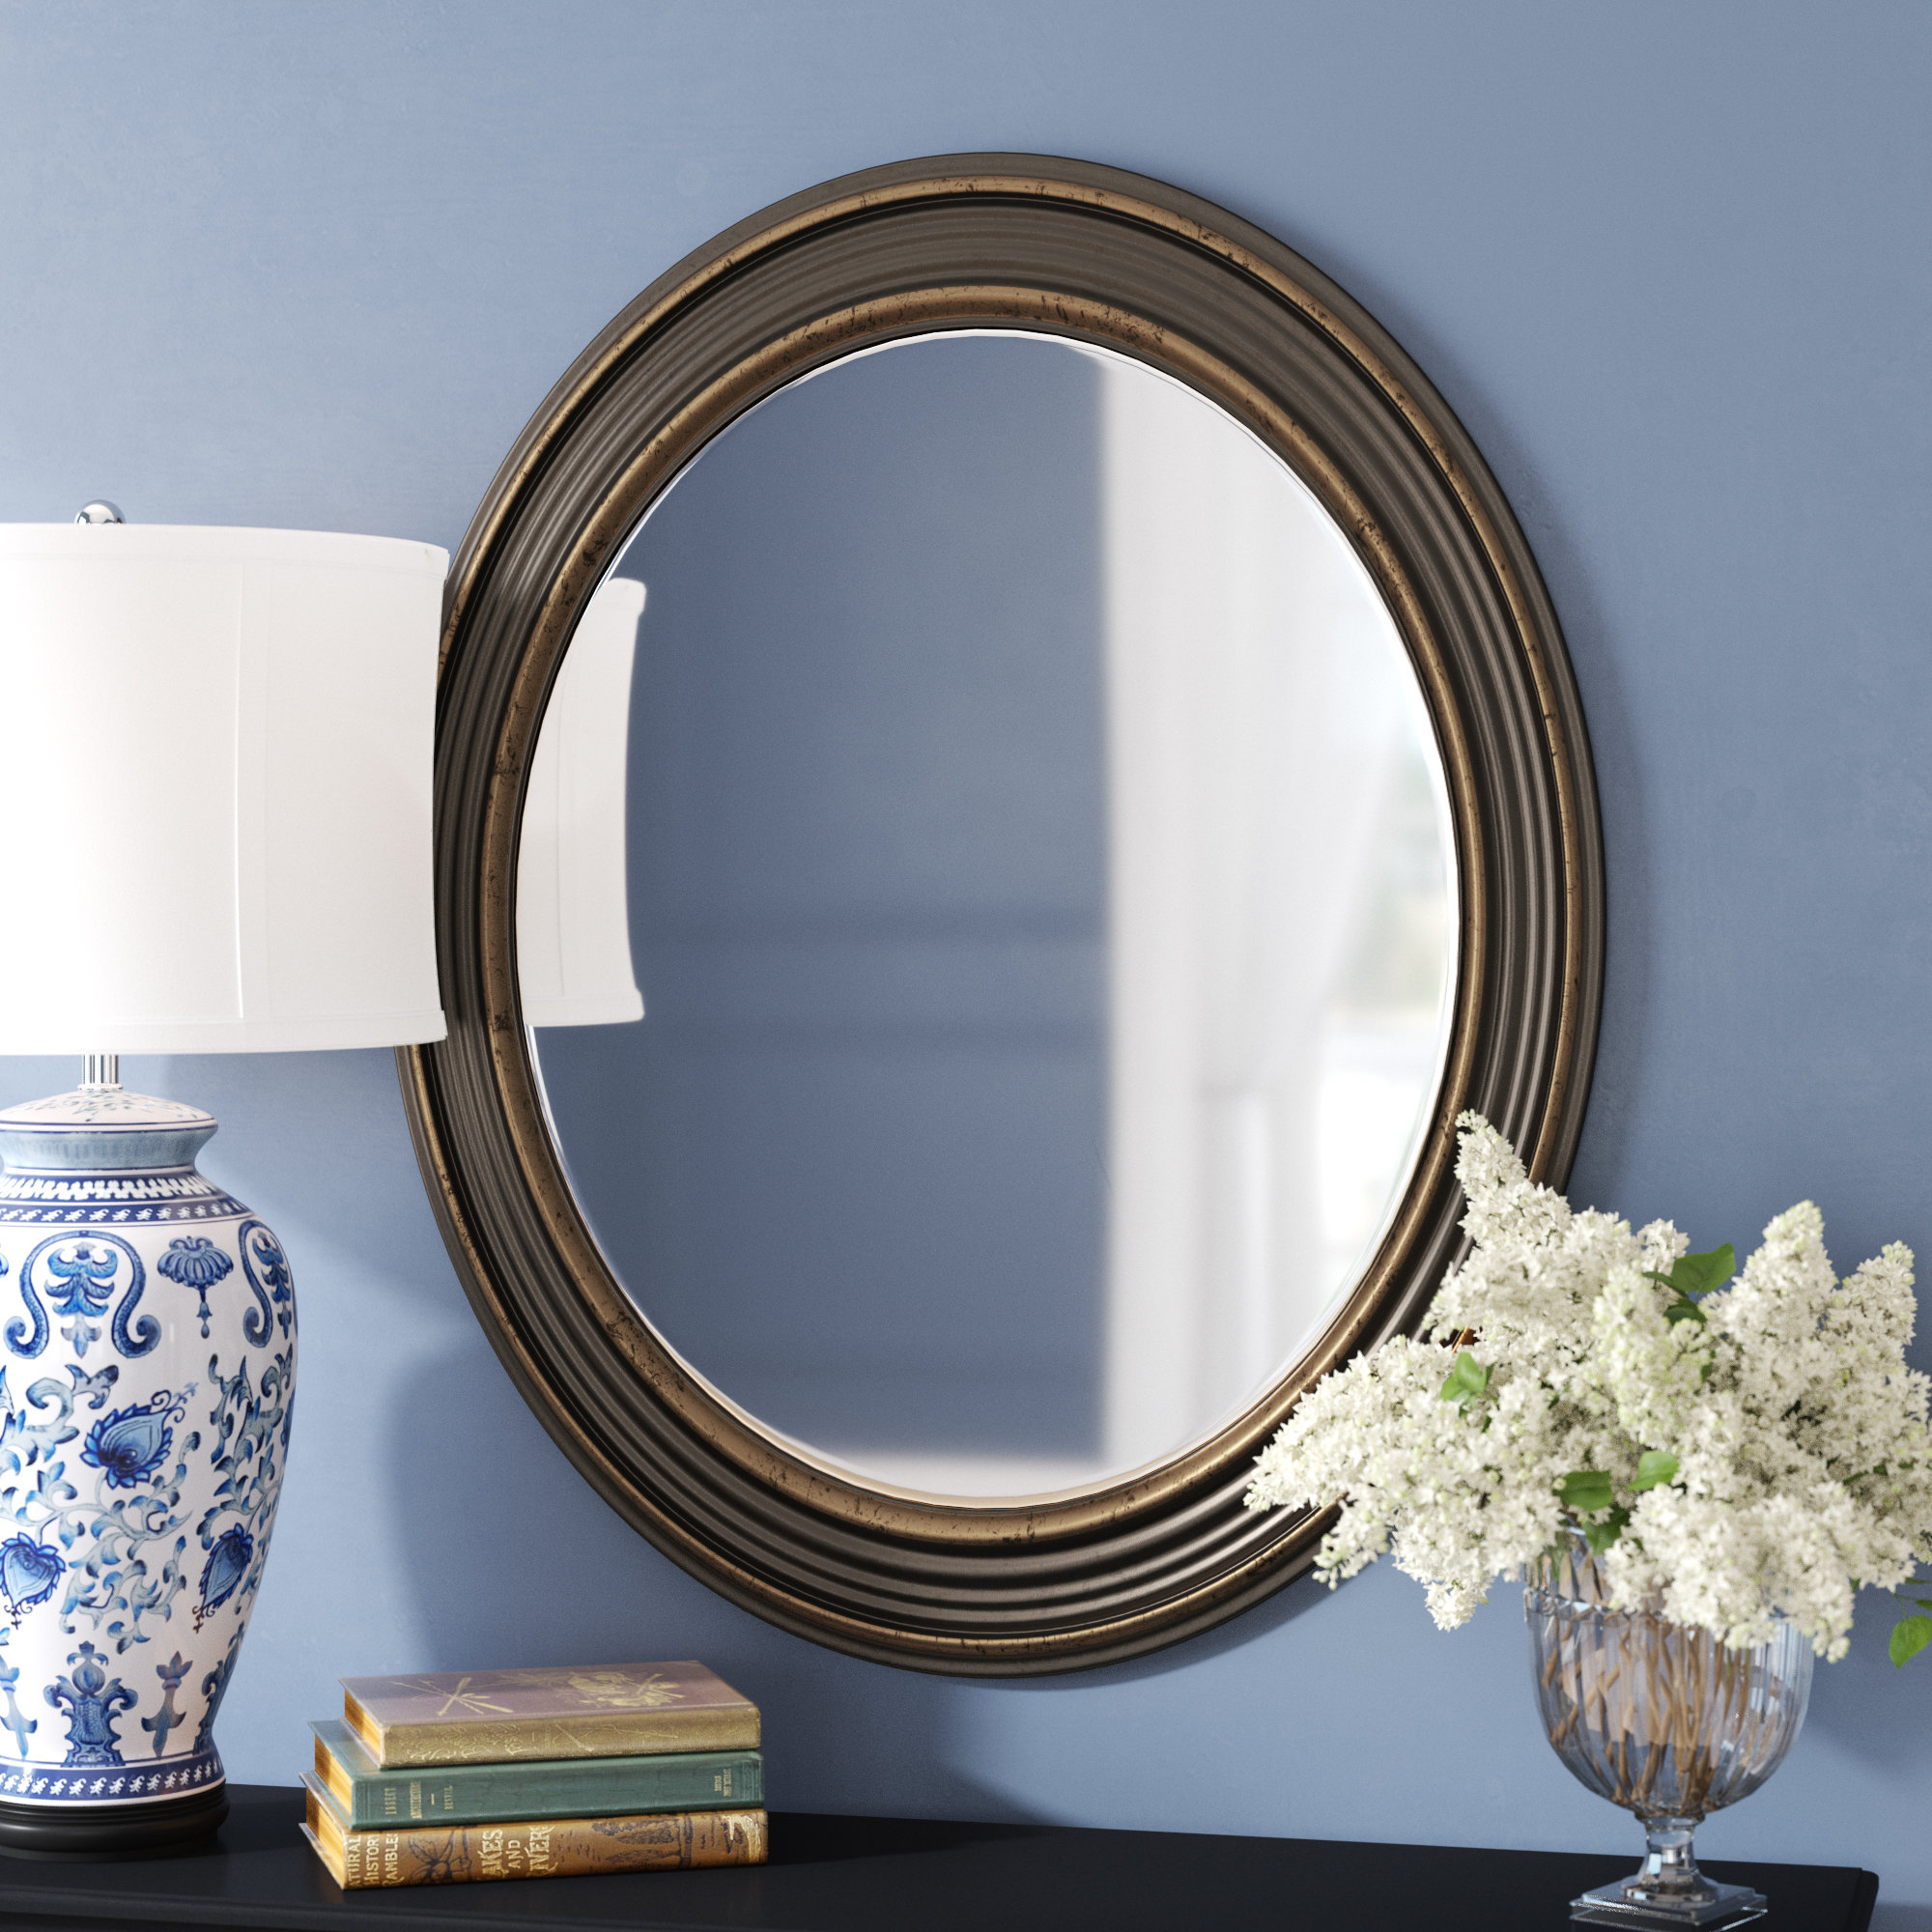 Burnes Oval Traditional Wall Mirror Intended For Pfister Oval Wood Wall Mirrors (Image 1 of 20)